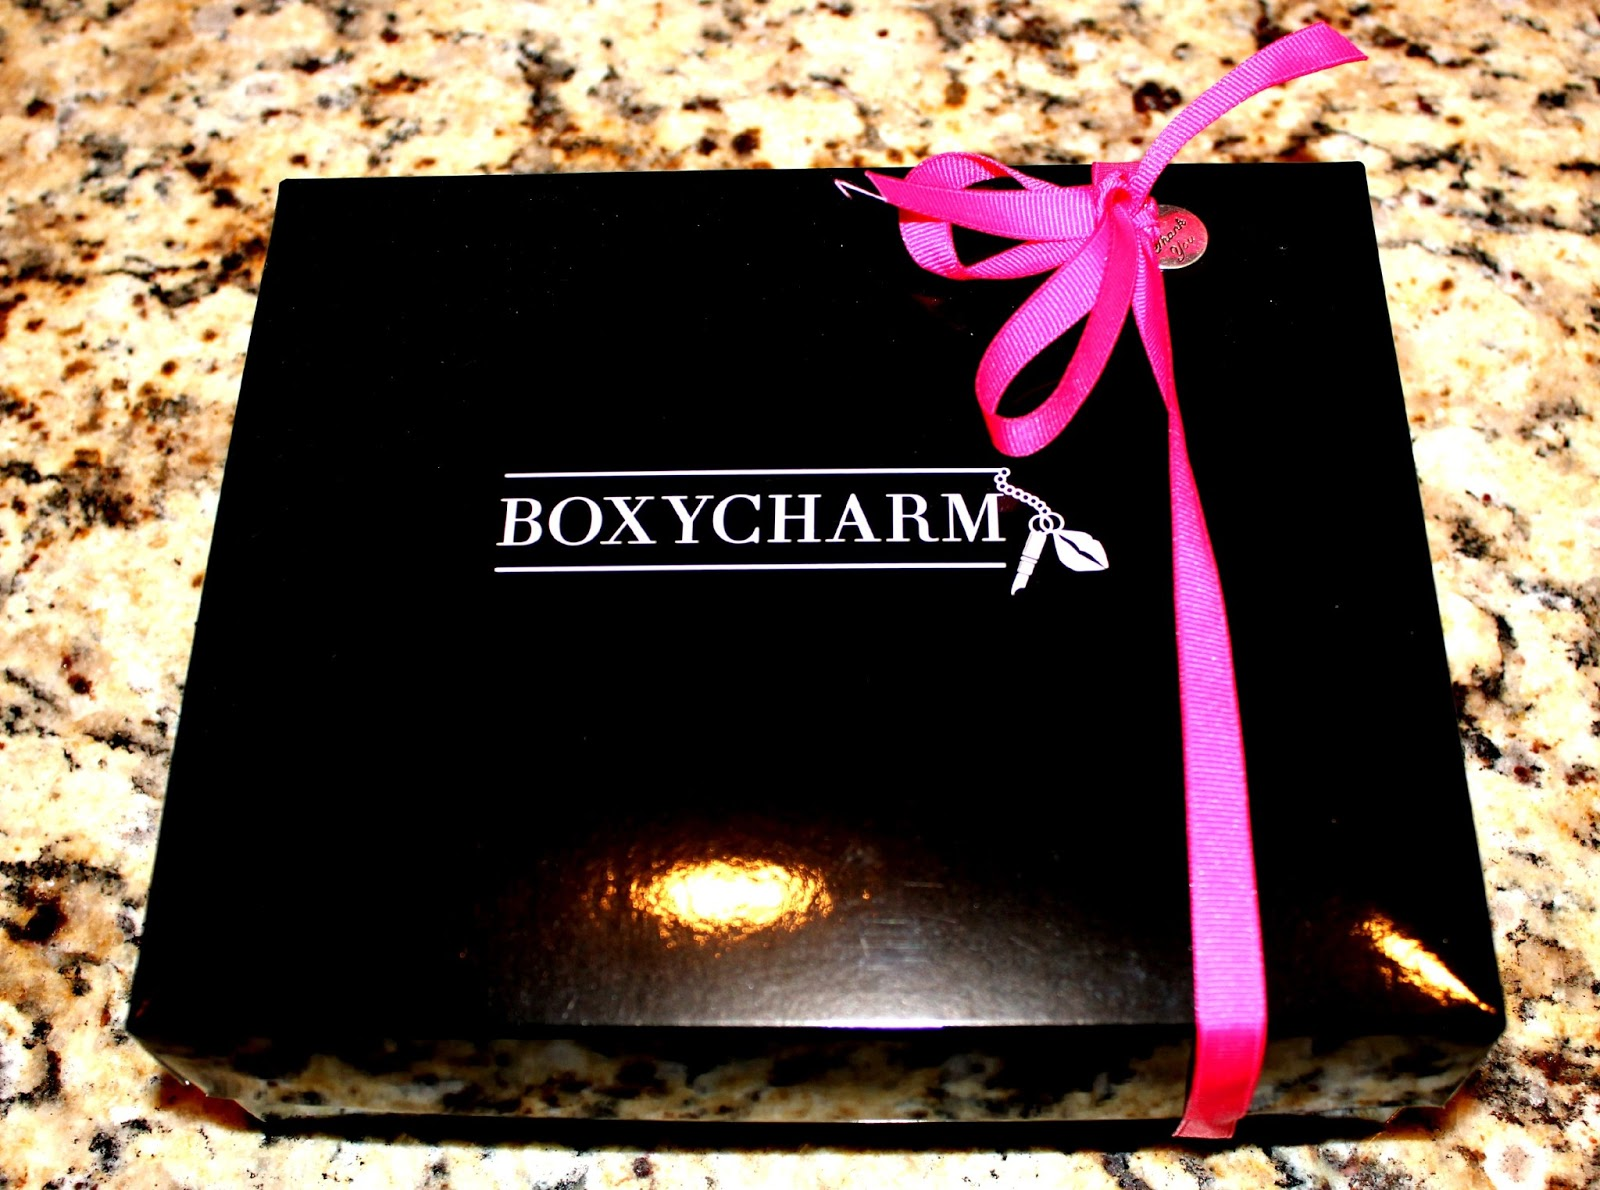 BentleyBlonde: Boxycharm Review - Pros and Cons of Boxycharm Beauty